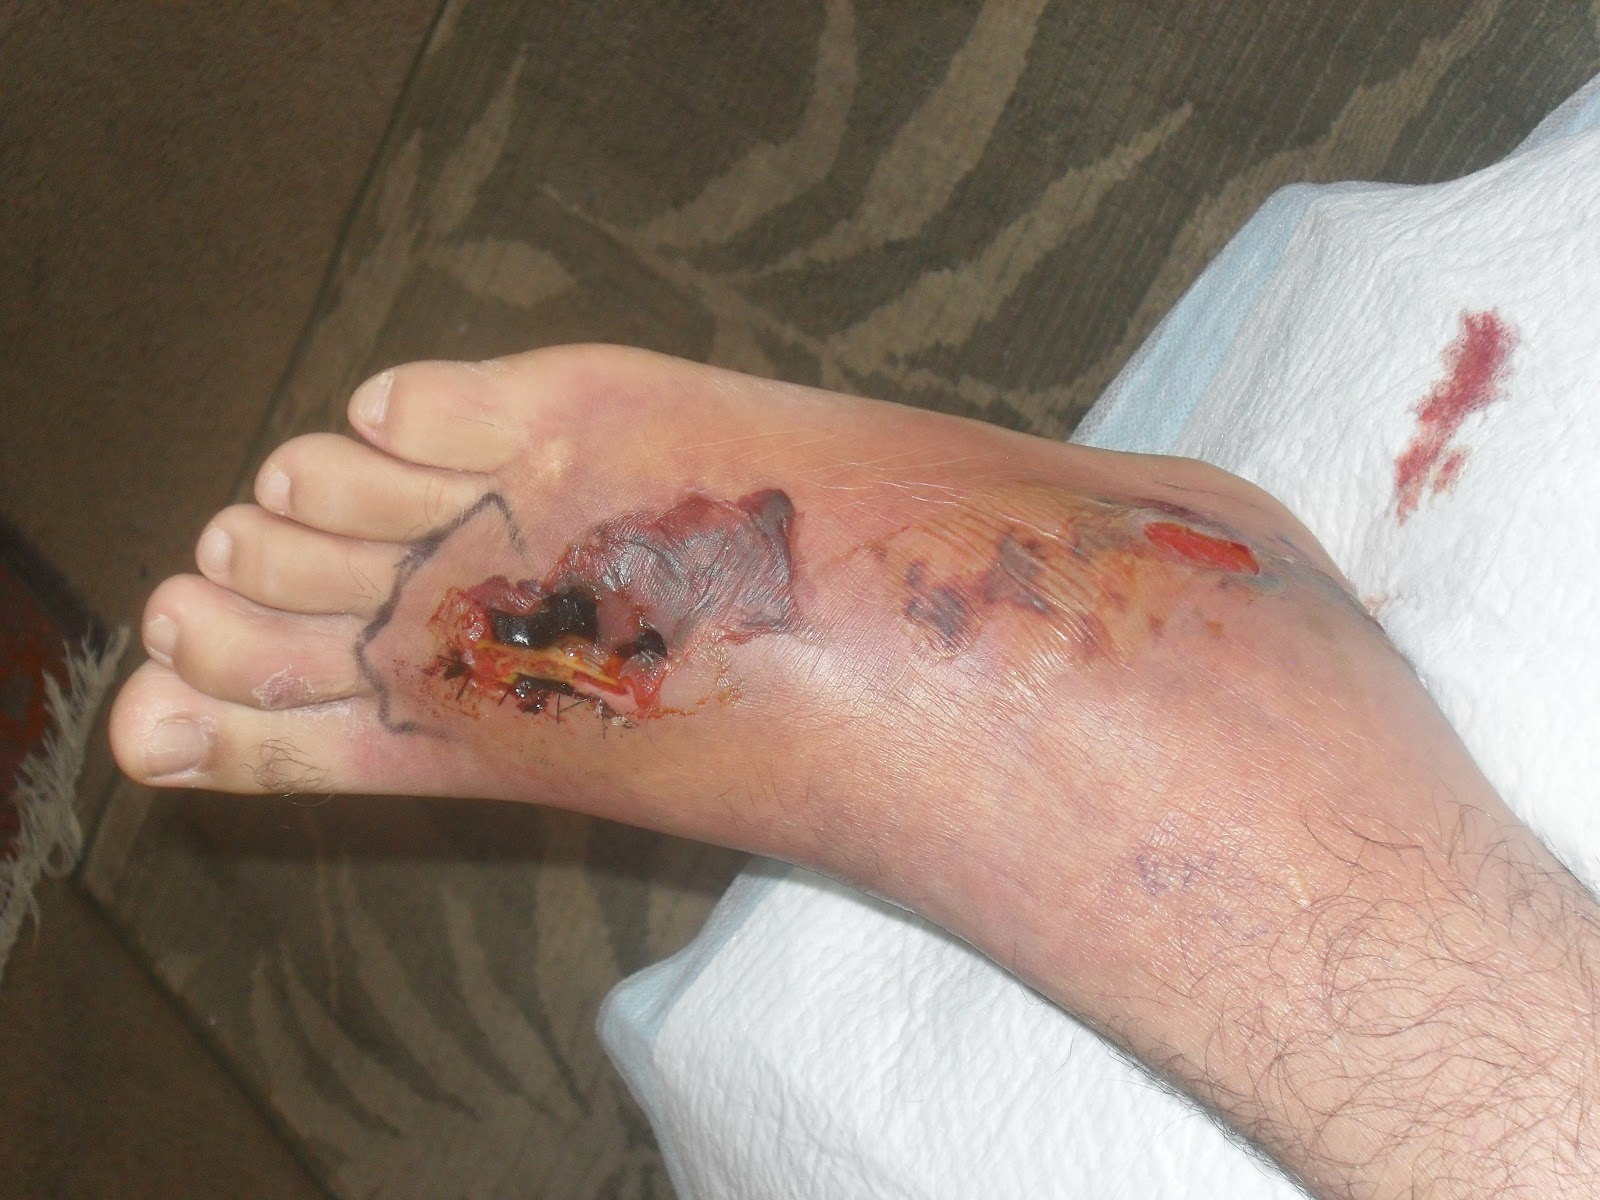 flesh eating bacteria Just days later, on jan 3, munoz, 37, of chula vista, california, died after contracting necrotizing fasciitis (commonly known as flesh-eating bacteria), an aggressive bacterial infection that.